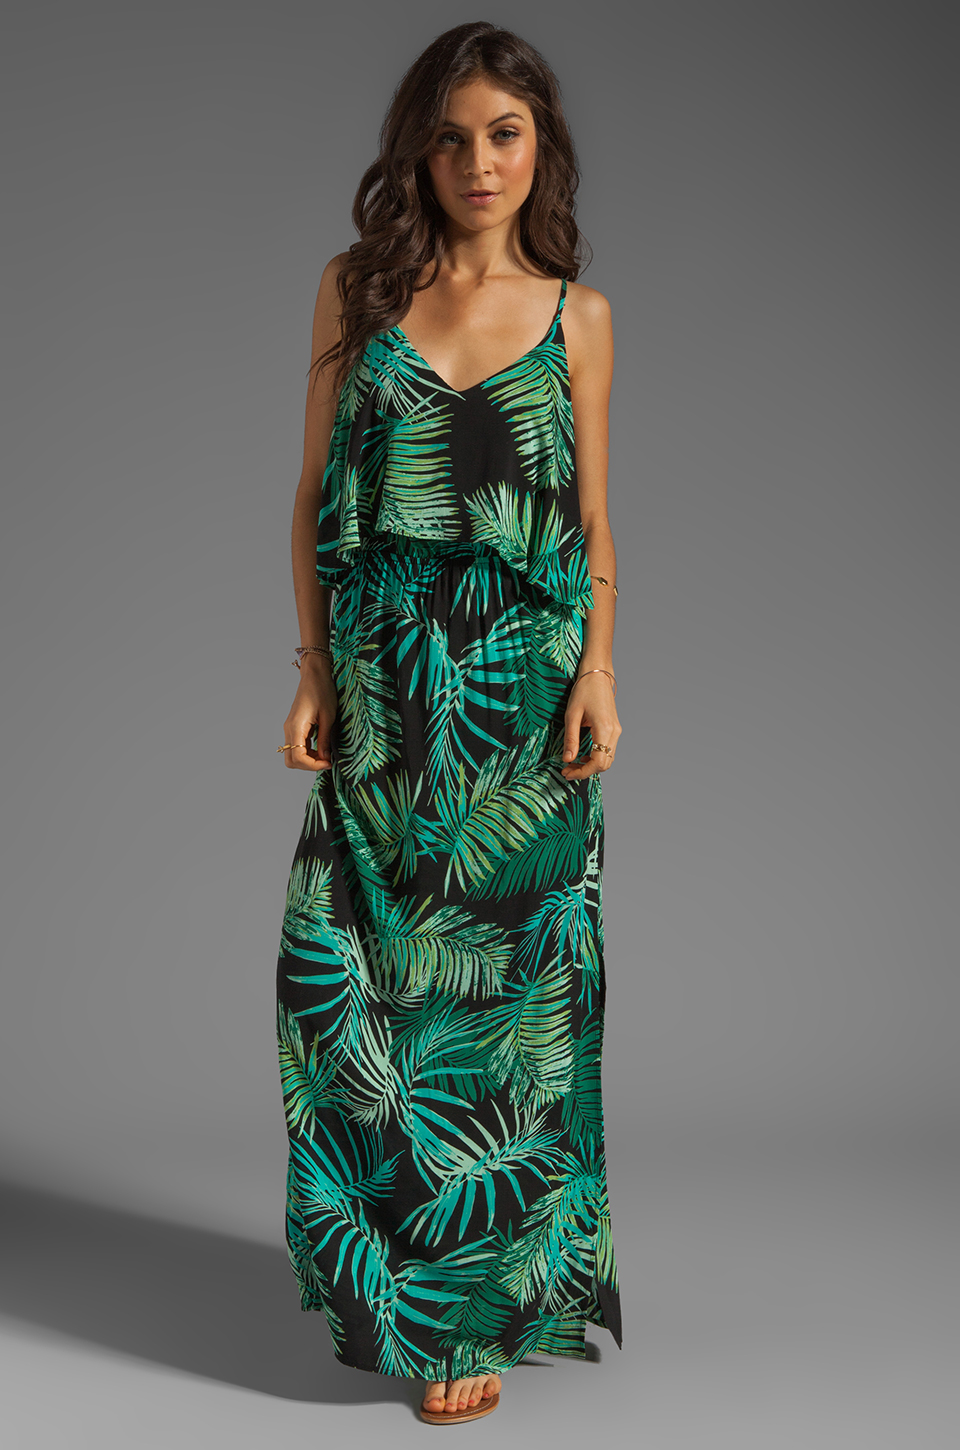 Eight Sixty Palm Maxi Dress in Blue/Green